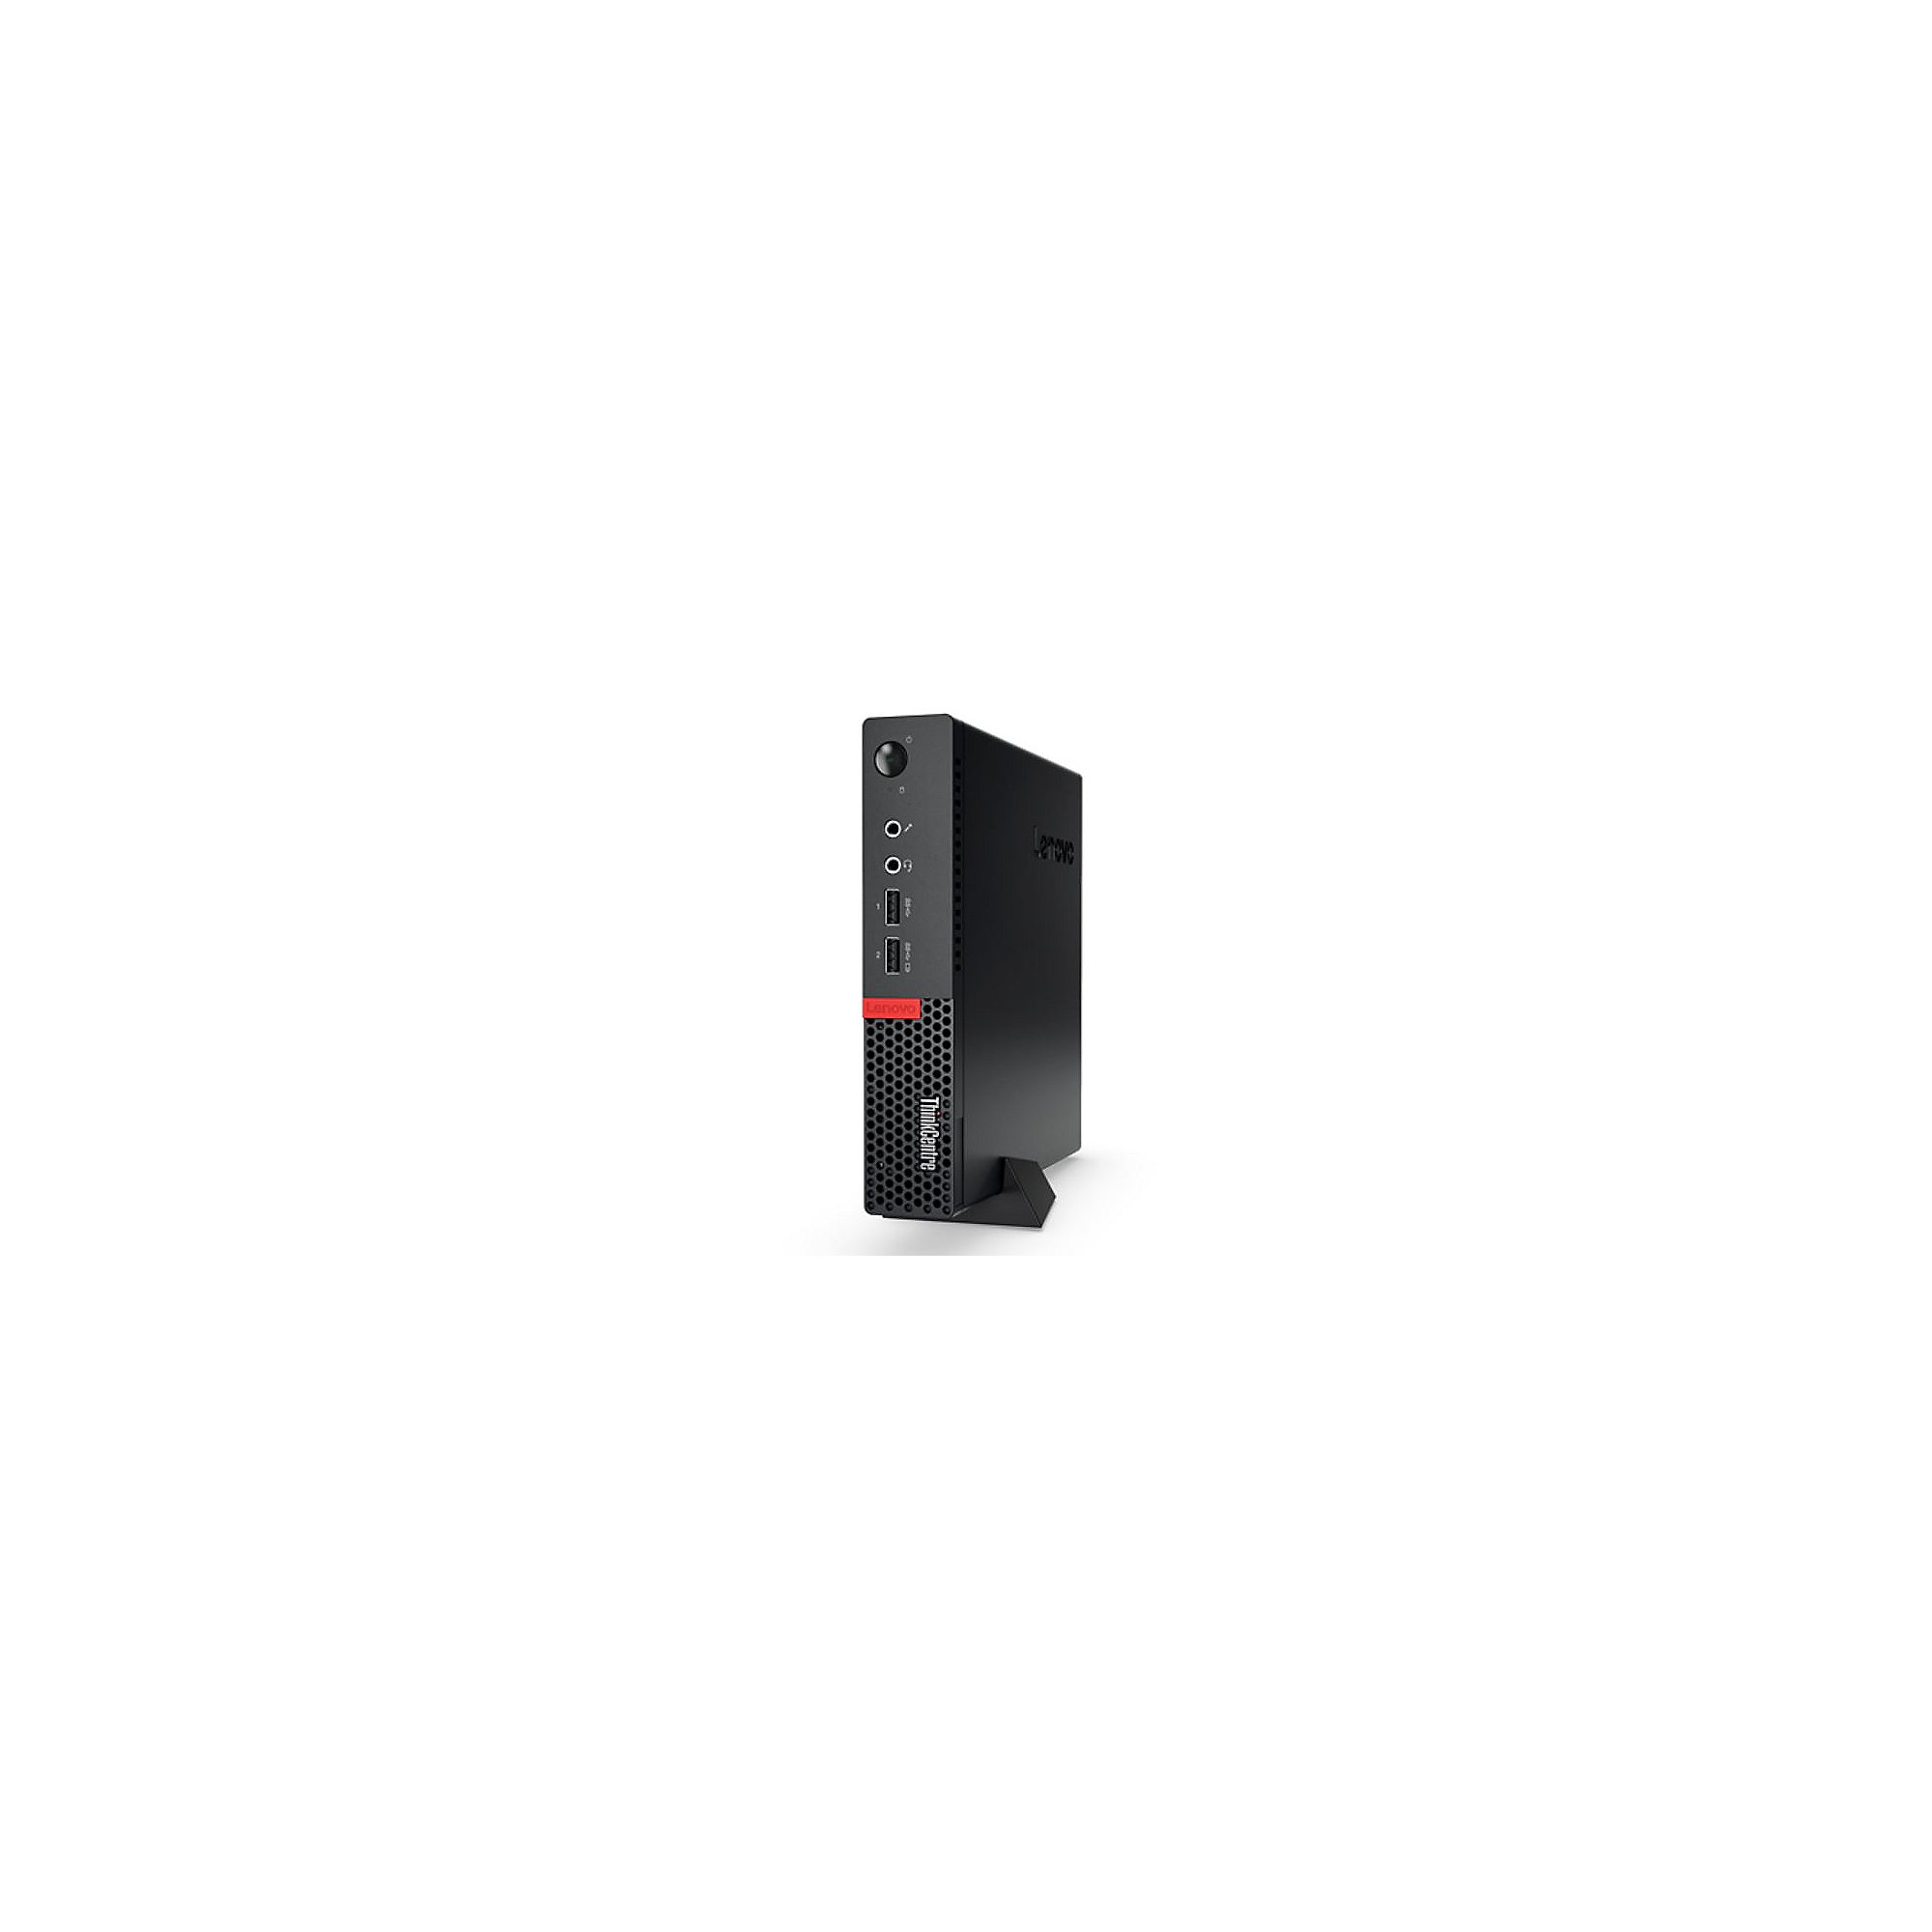 Lenovo ThinkCentre M910q 10MV0015GE -i5-7500TvPro 8GB/256GB SSD DVD±RW WLAN W10P